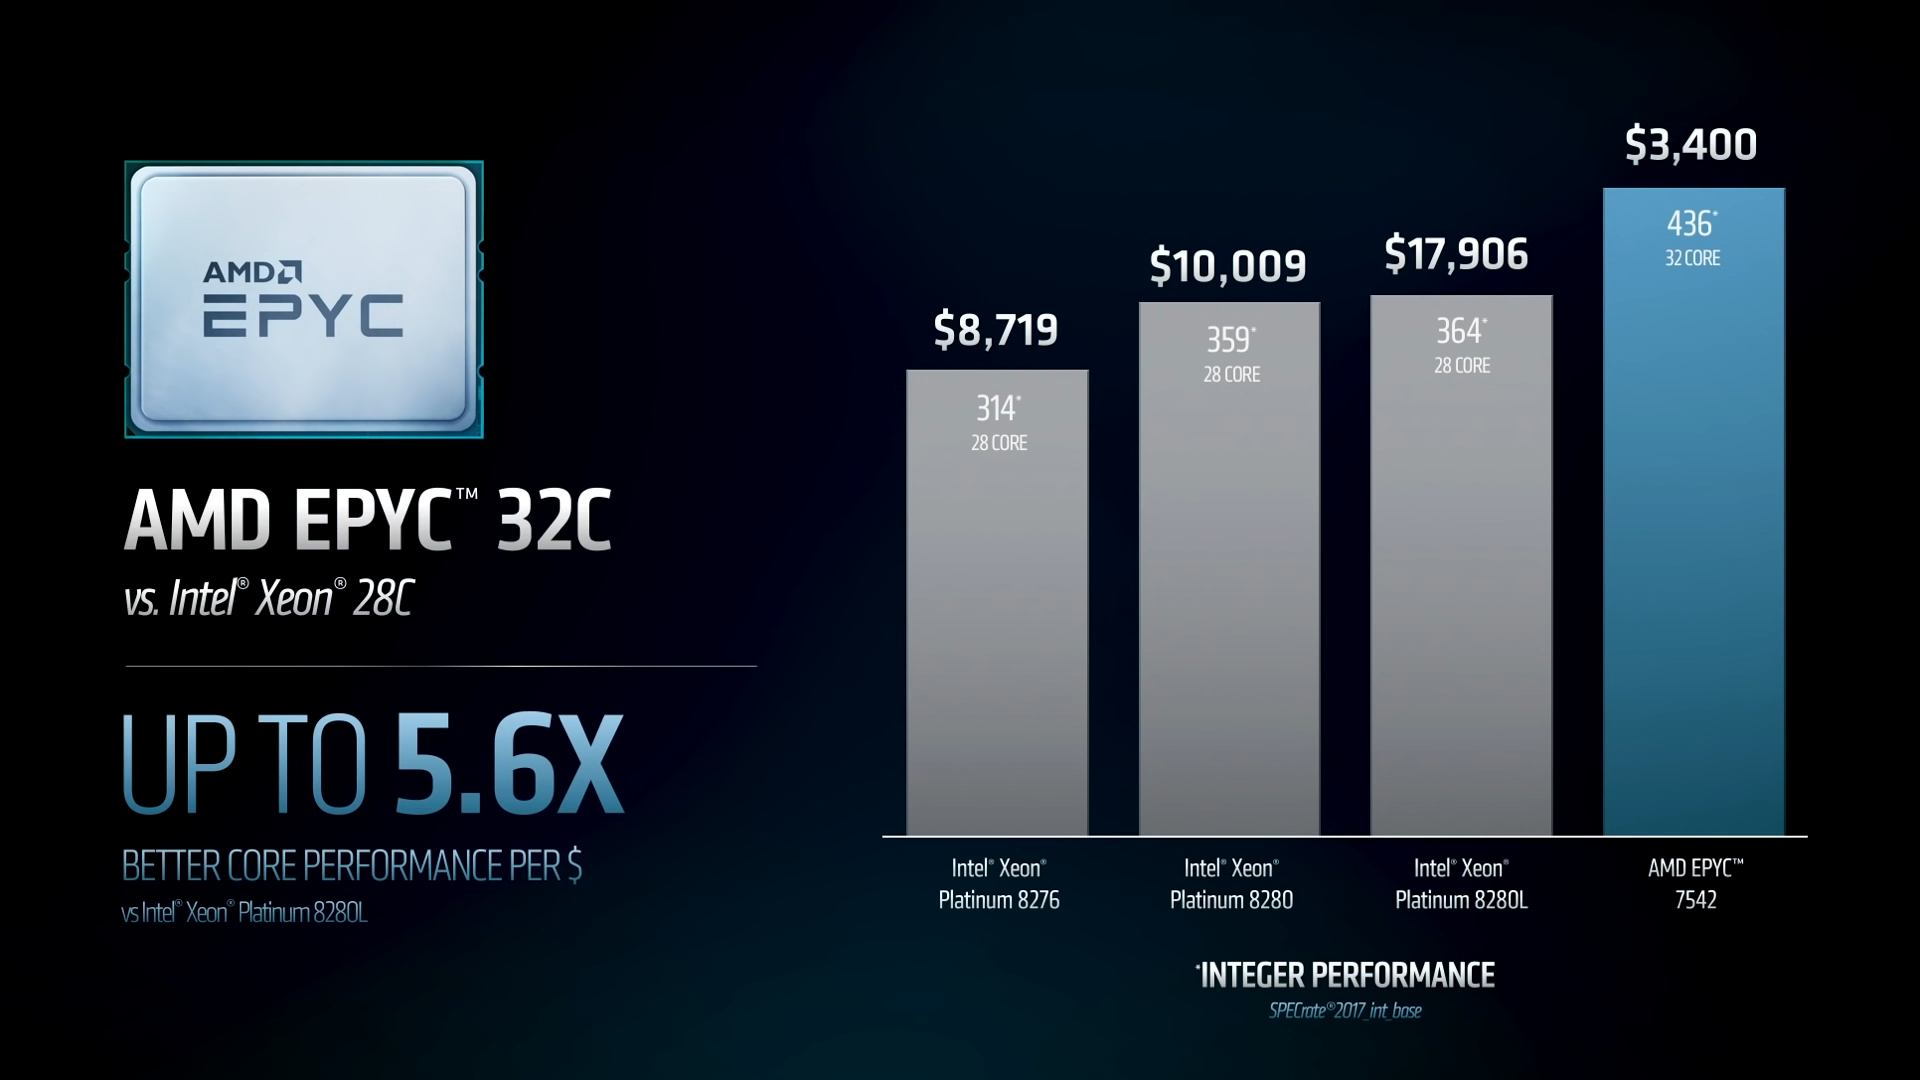 Amd We Outperform Intel By 400 Per Dollar With Zen 2 Powered Epyc Cpus